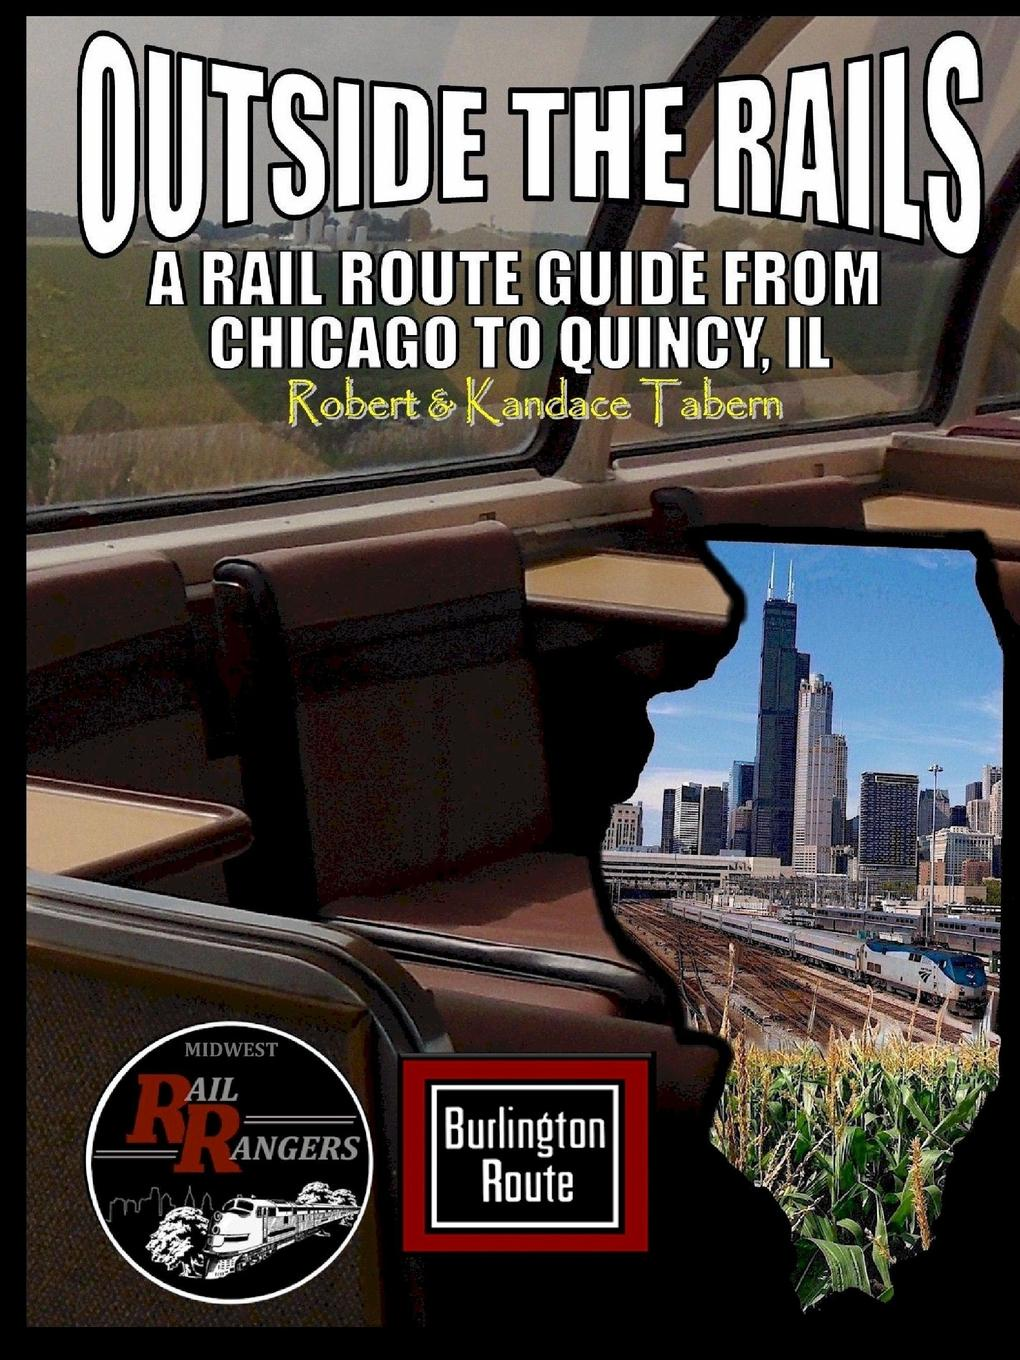 Robert Tabern, Kandace Tabern Outside the Rails. A Rail Route Guide from Chicago to Quincy, IL